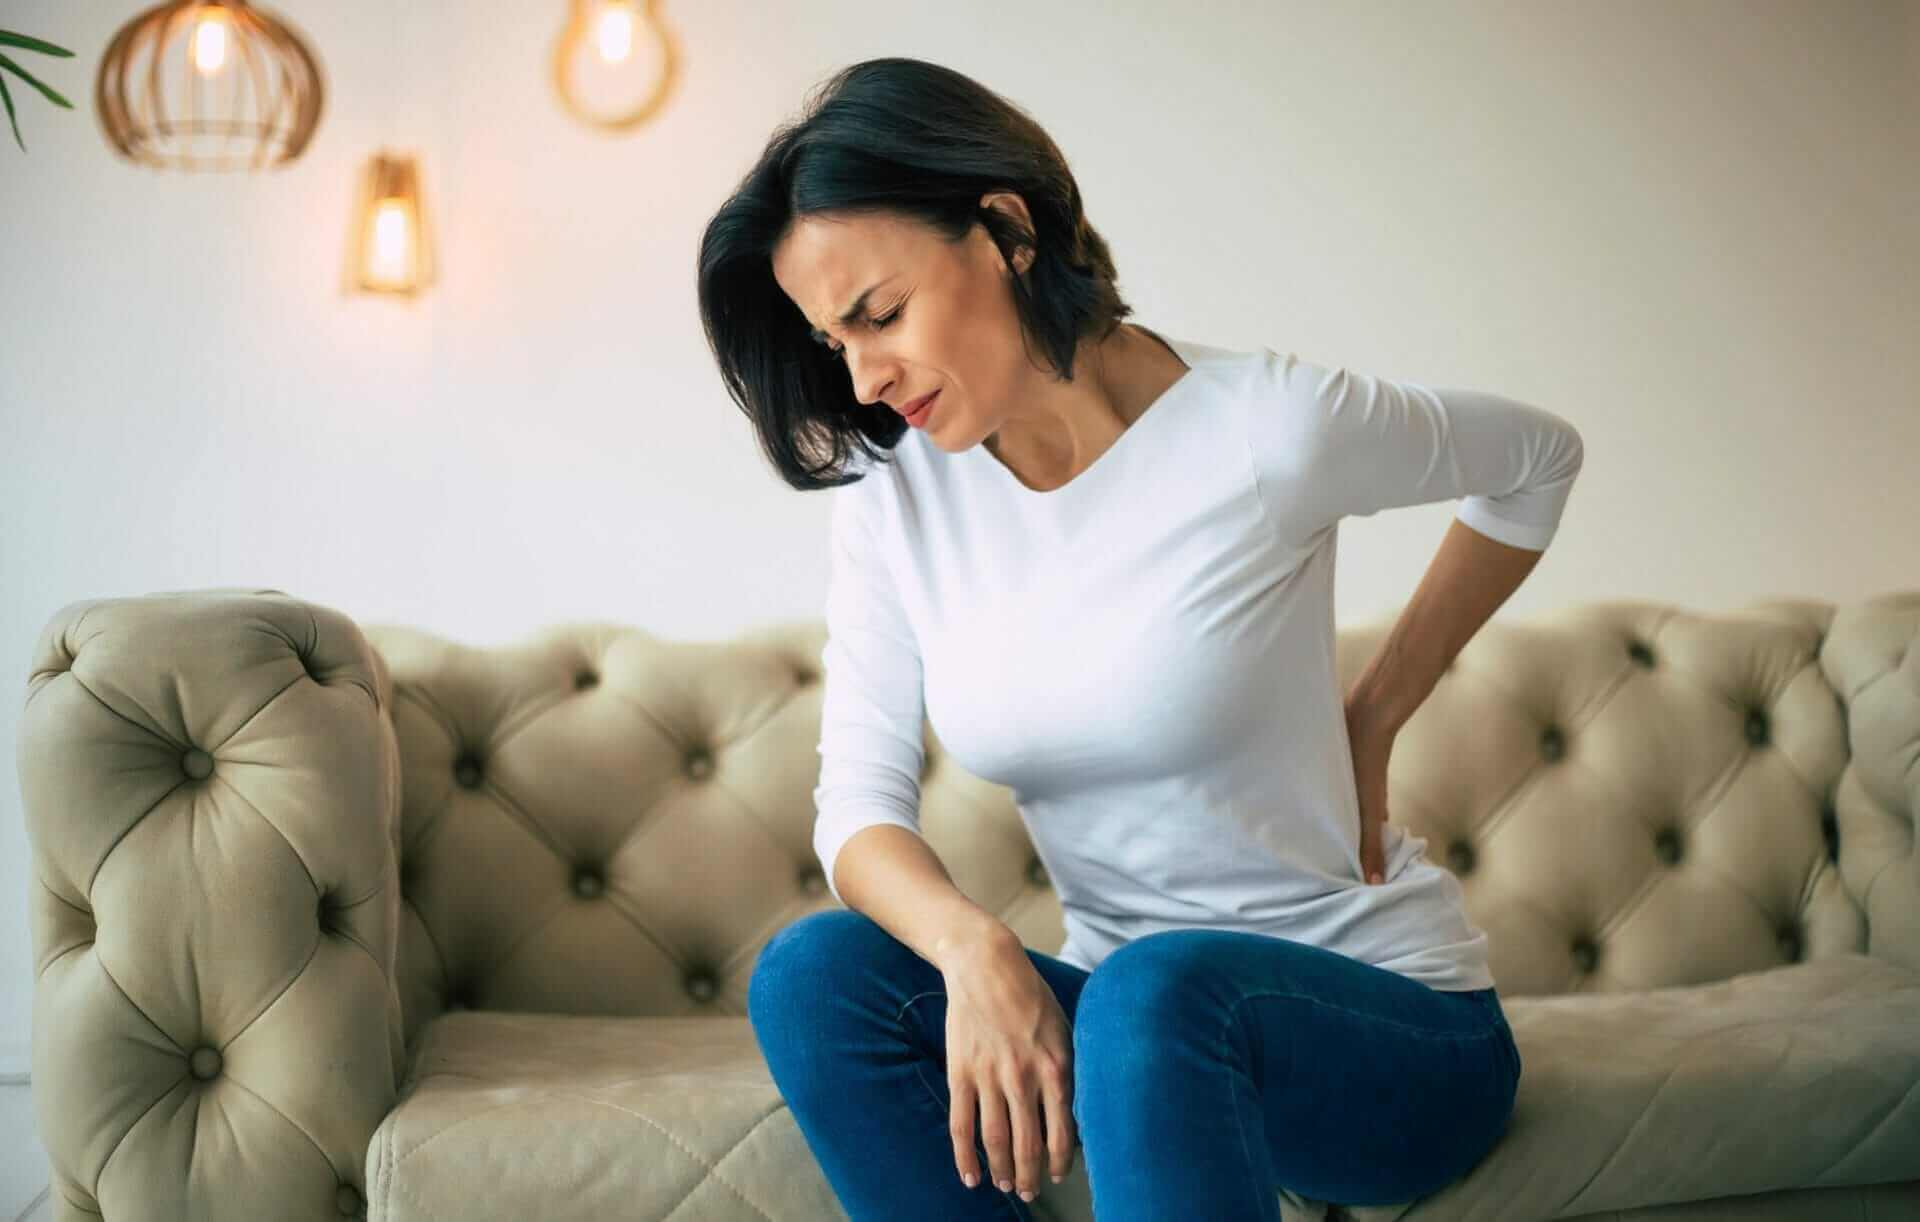 5 Best Stretches for Low Back Pain Relief You Can Do At Home